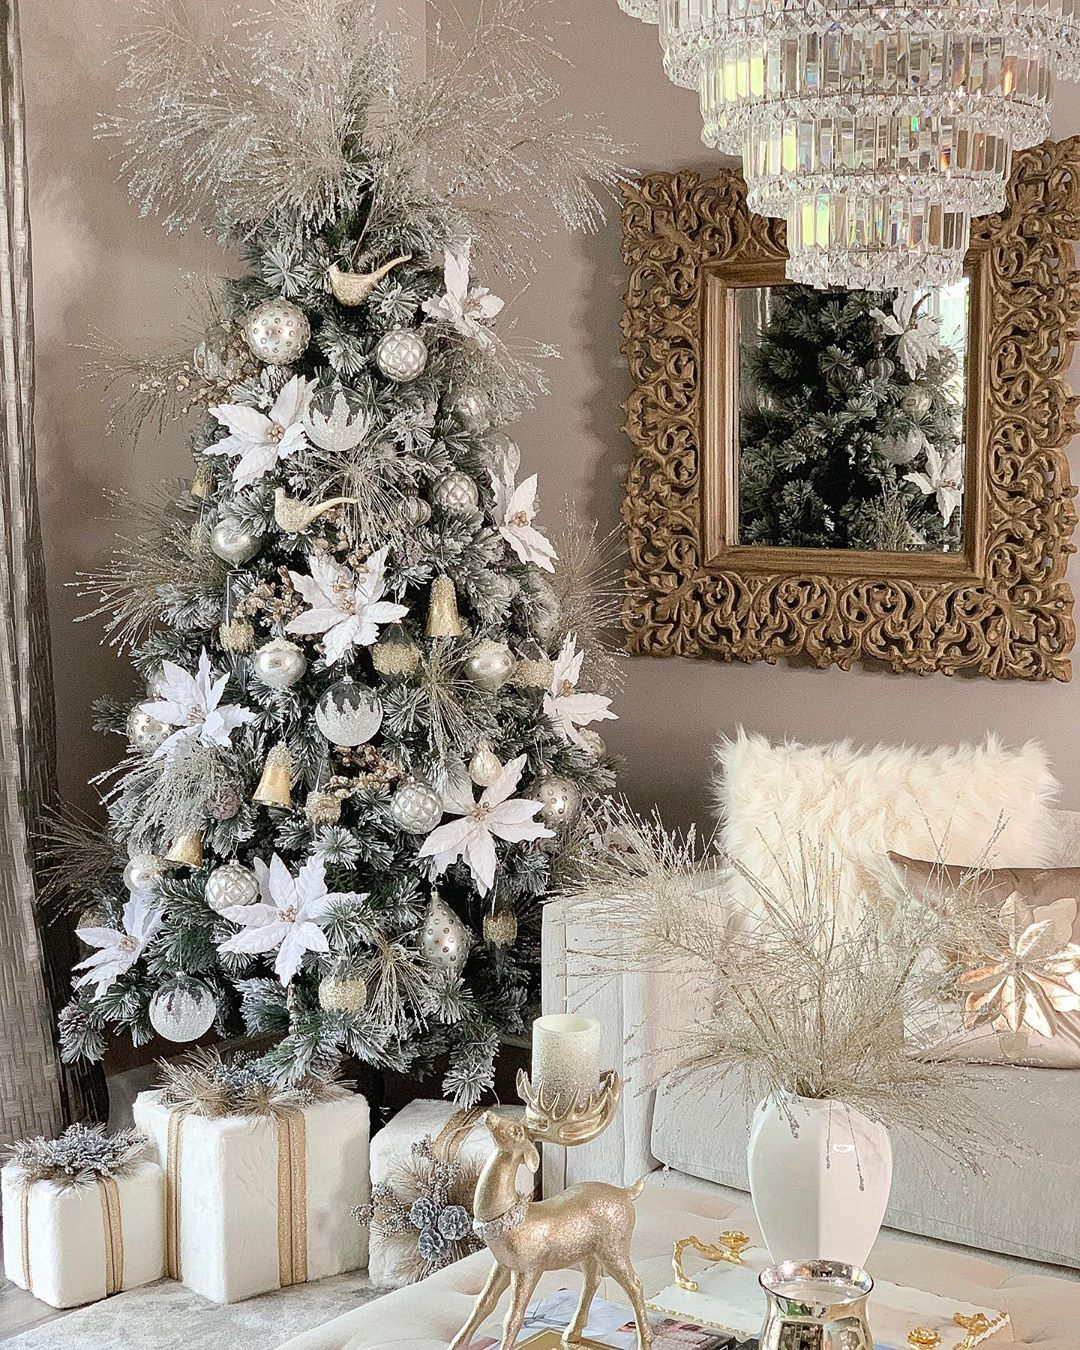 8 903 Likes 489 Comments Farah Merhi Farahjmerhi On Instagram My White Christmas Tree Decorations Beautiful Christmas Trees Christmas Tree Inspiration